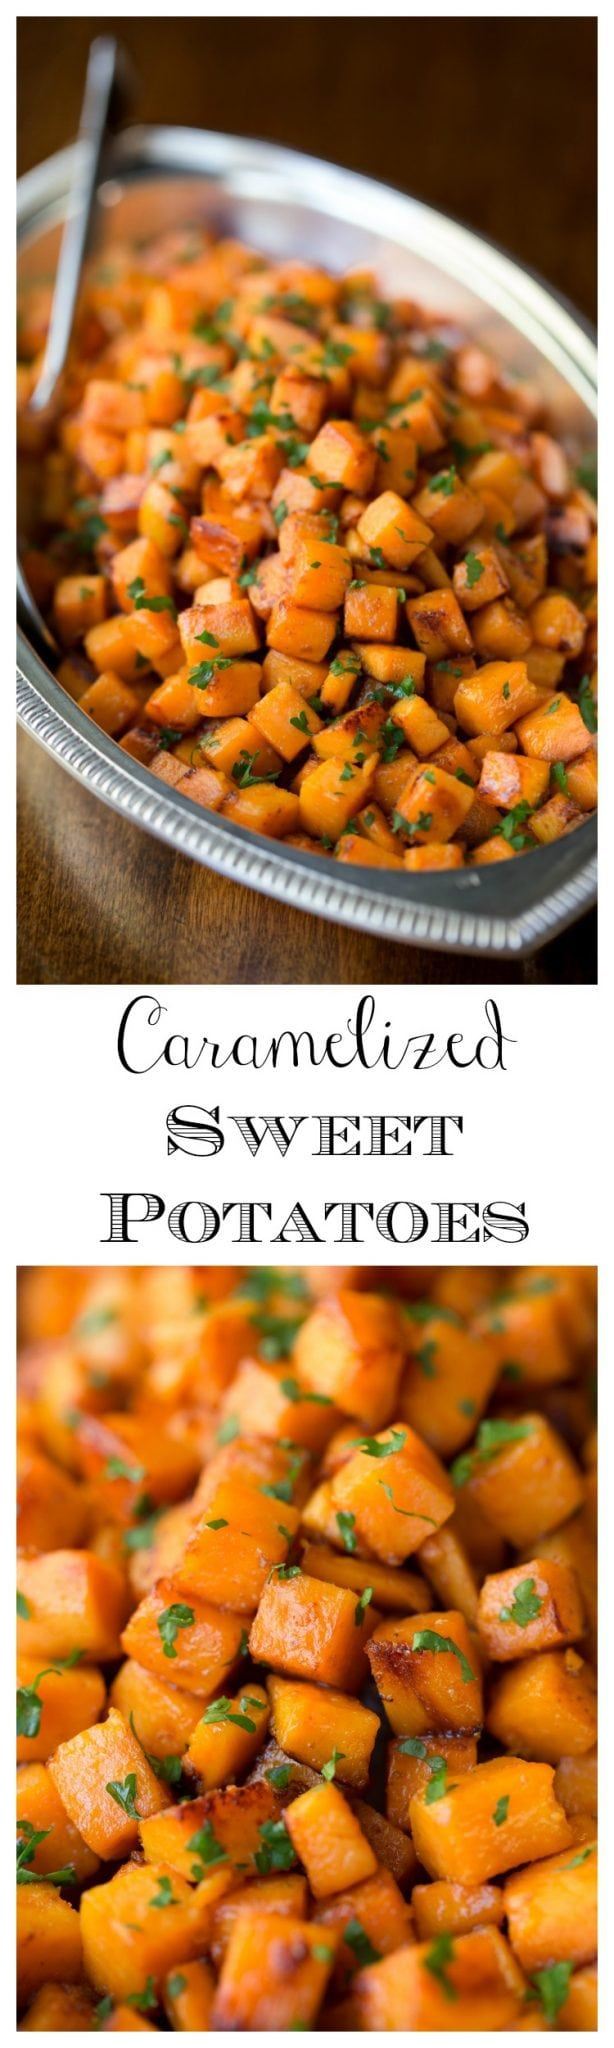 Super quick and easy, these Caramelized Sweet Potatoes are a healthy alternative to traditional, sticky, marshmallow recipes. And they taste like candy! http://thecafesucrefarine.com